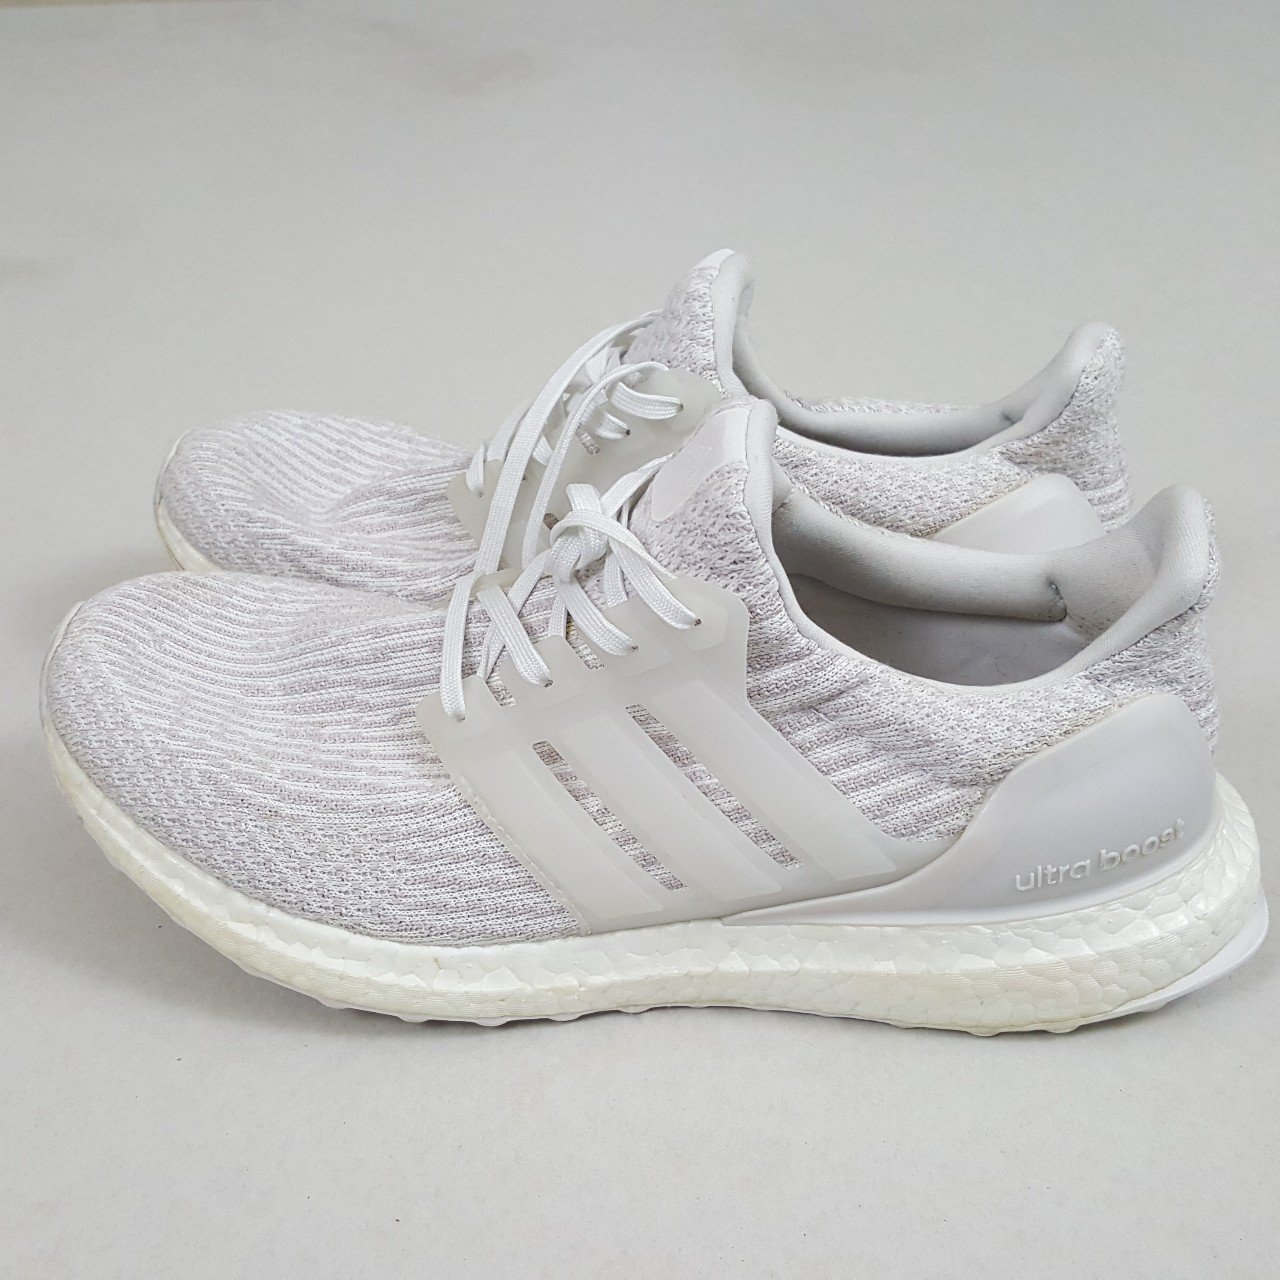 fbef22195 Adidas Ultra Boost 3.0 Triple White. Size 8.  trainers - Depop